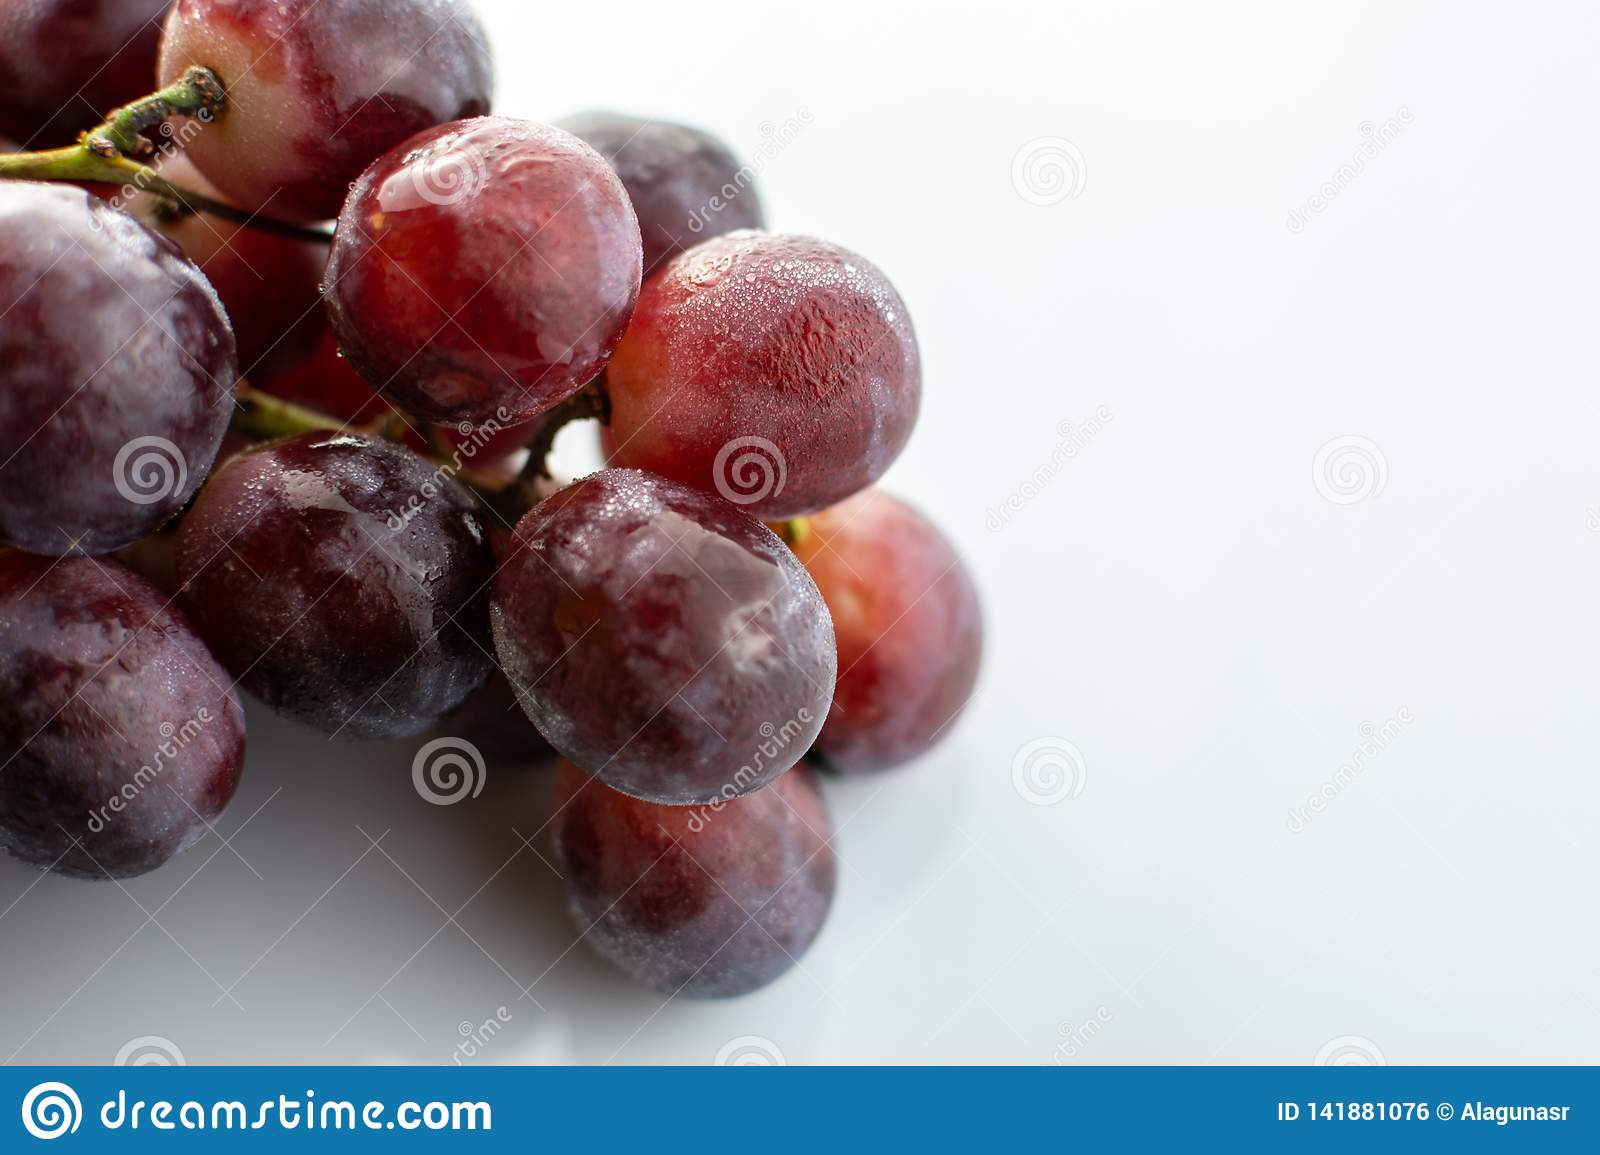 Bunch of red wet grapes isolated on white background